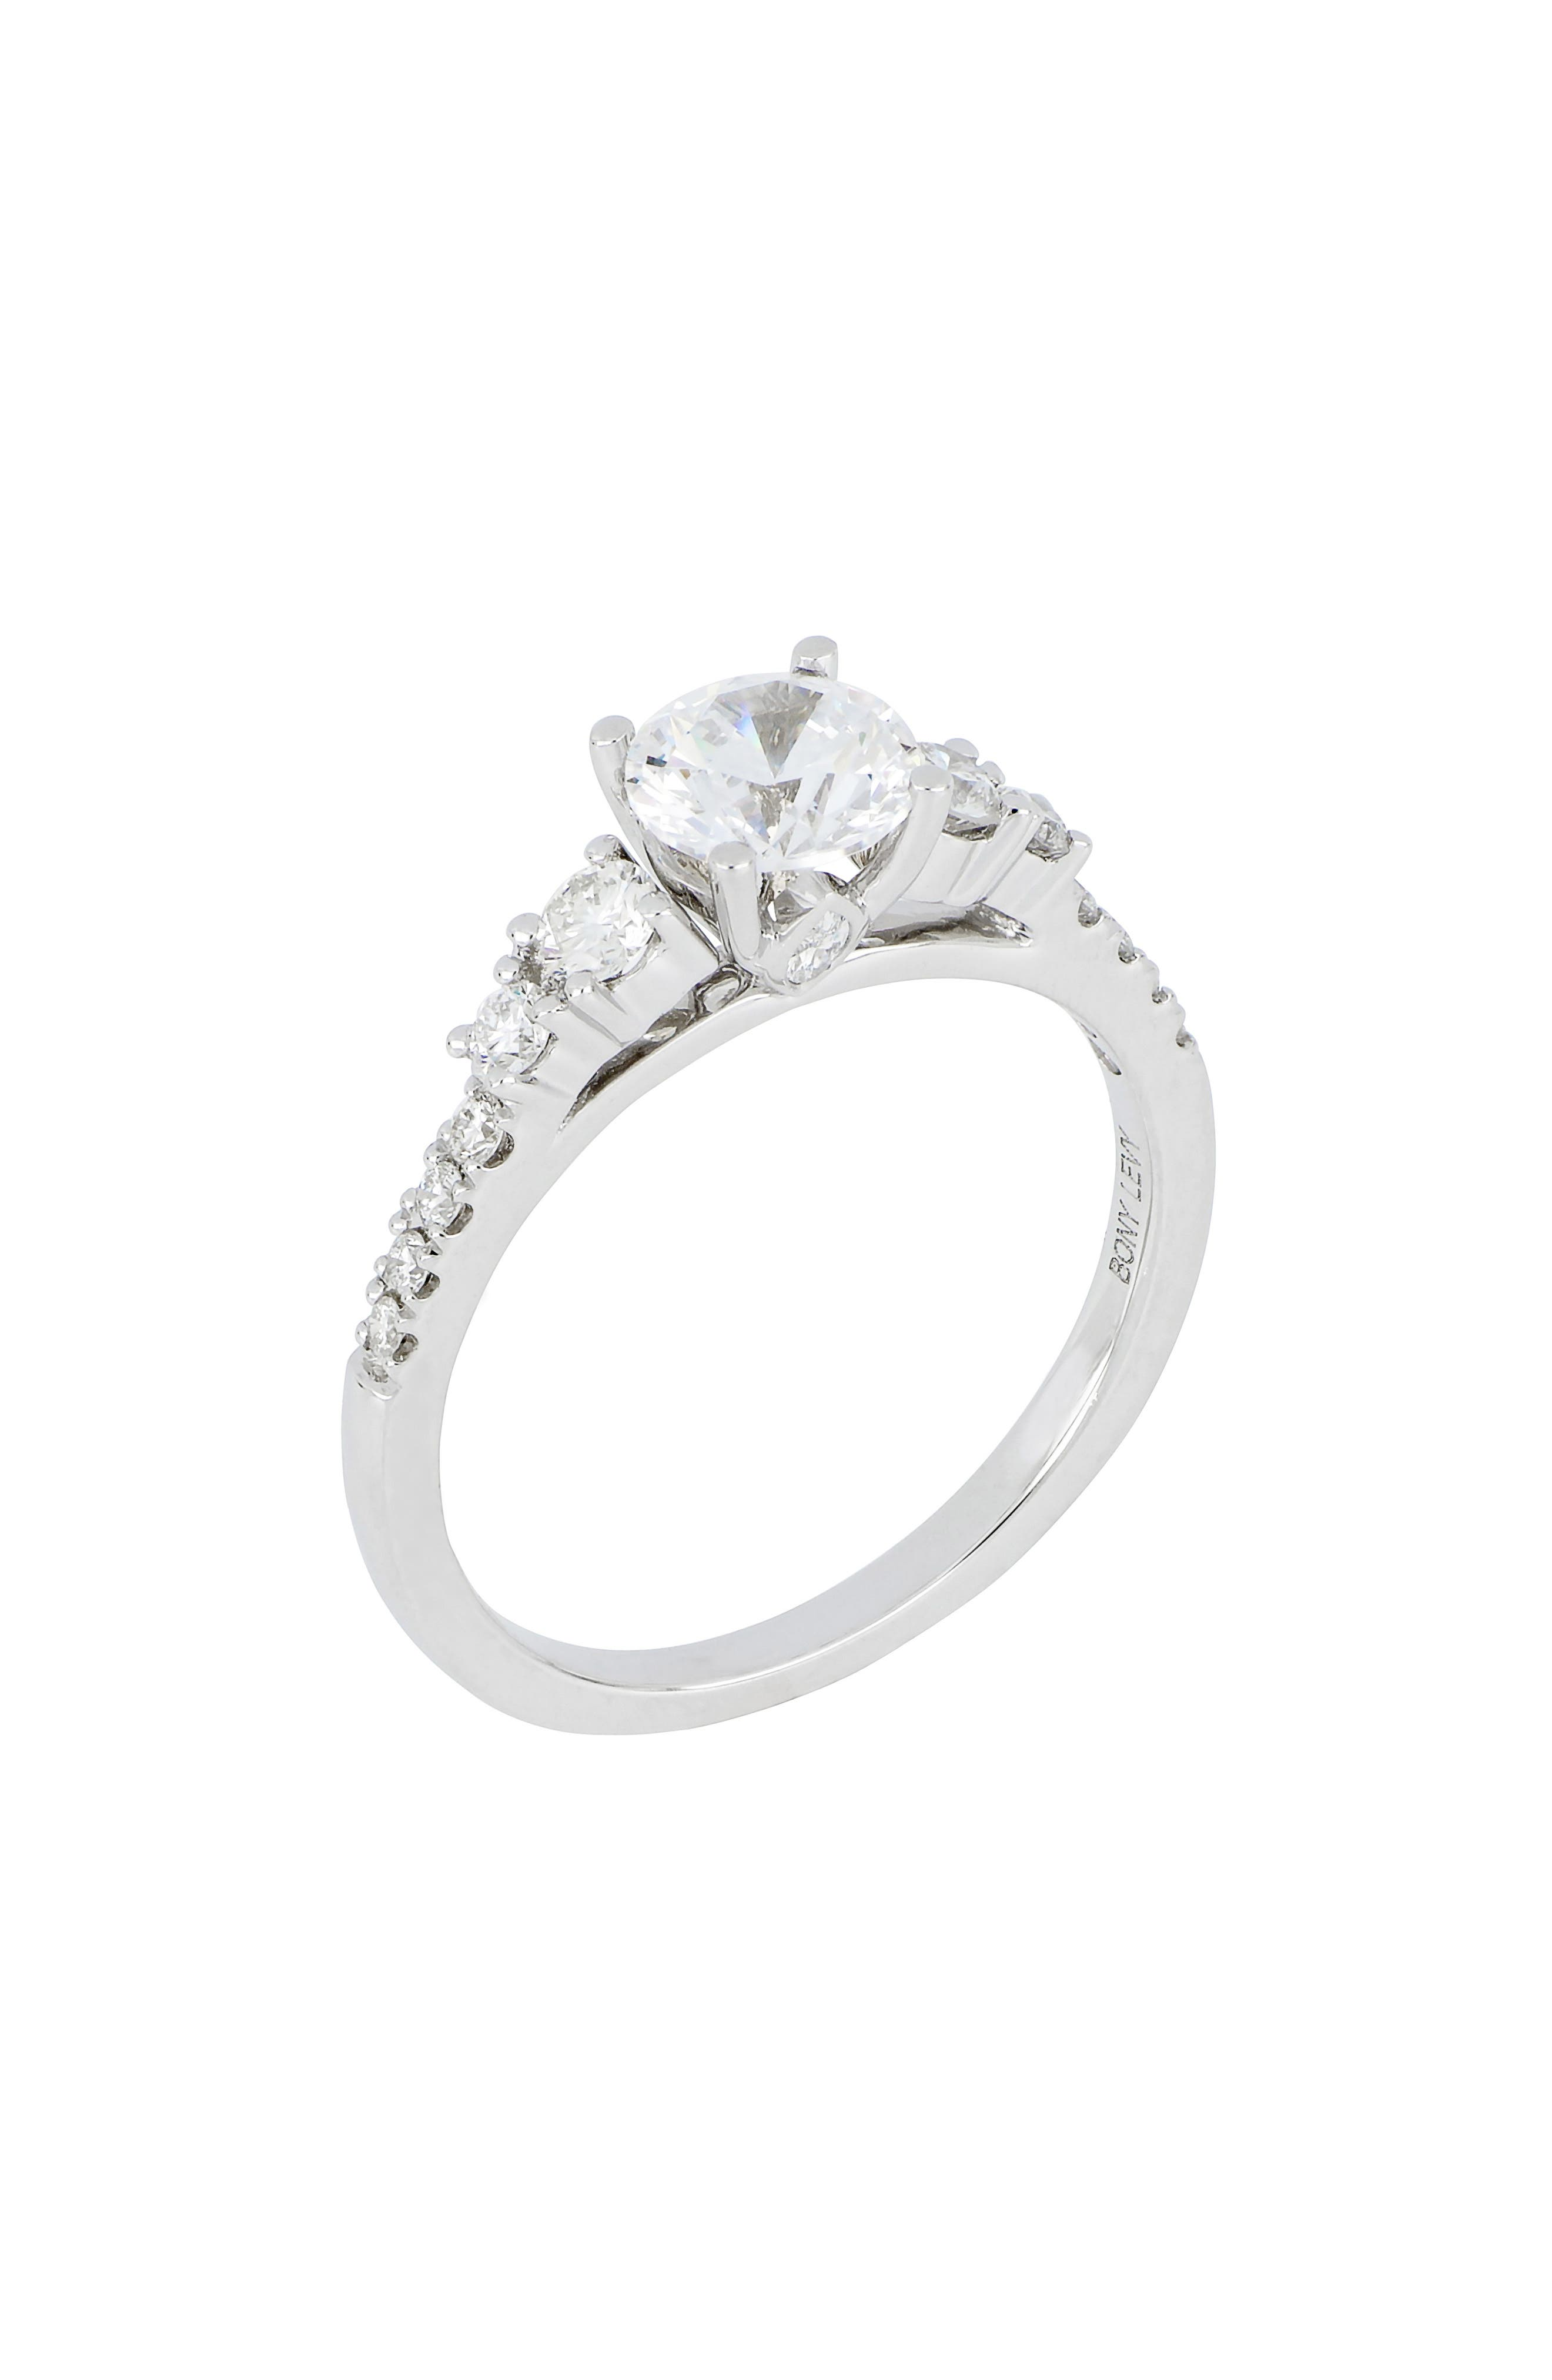 Multi Stone Round Engagement Ring Setting (Nordstrom Exclusive)